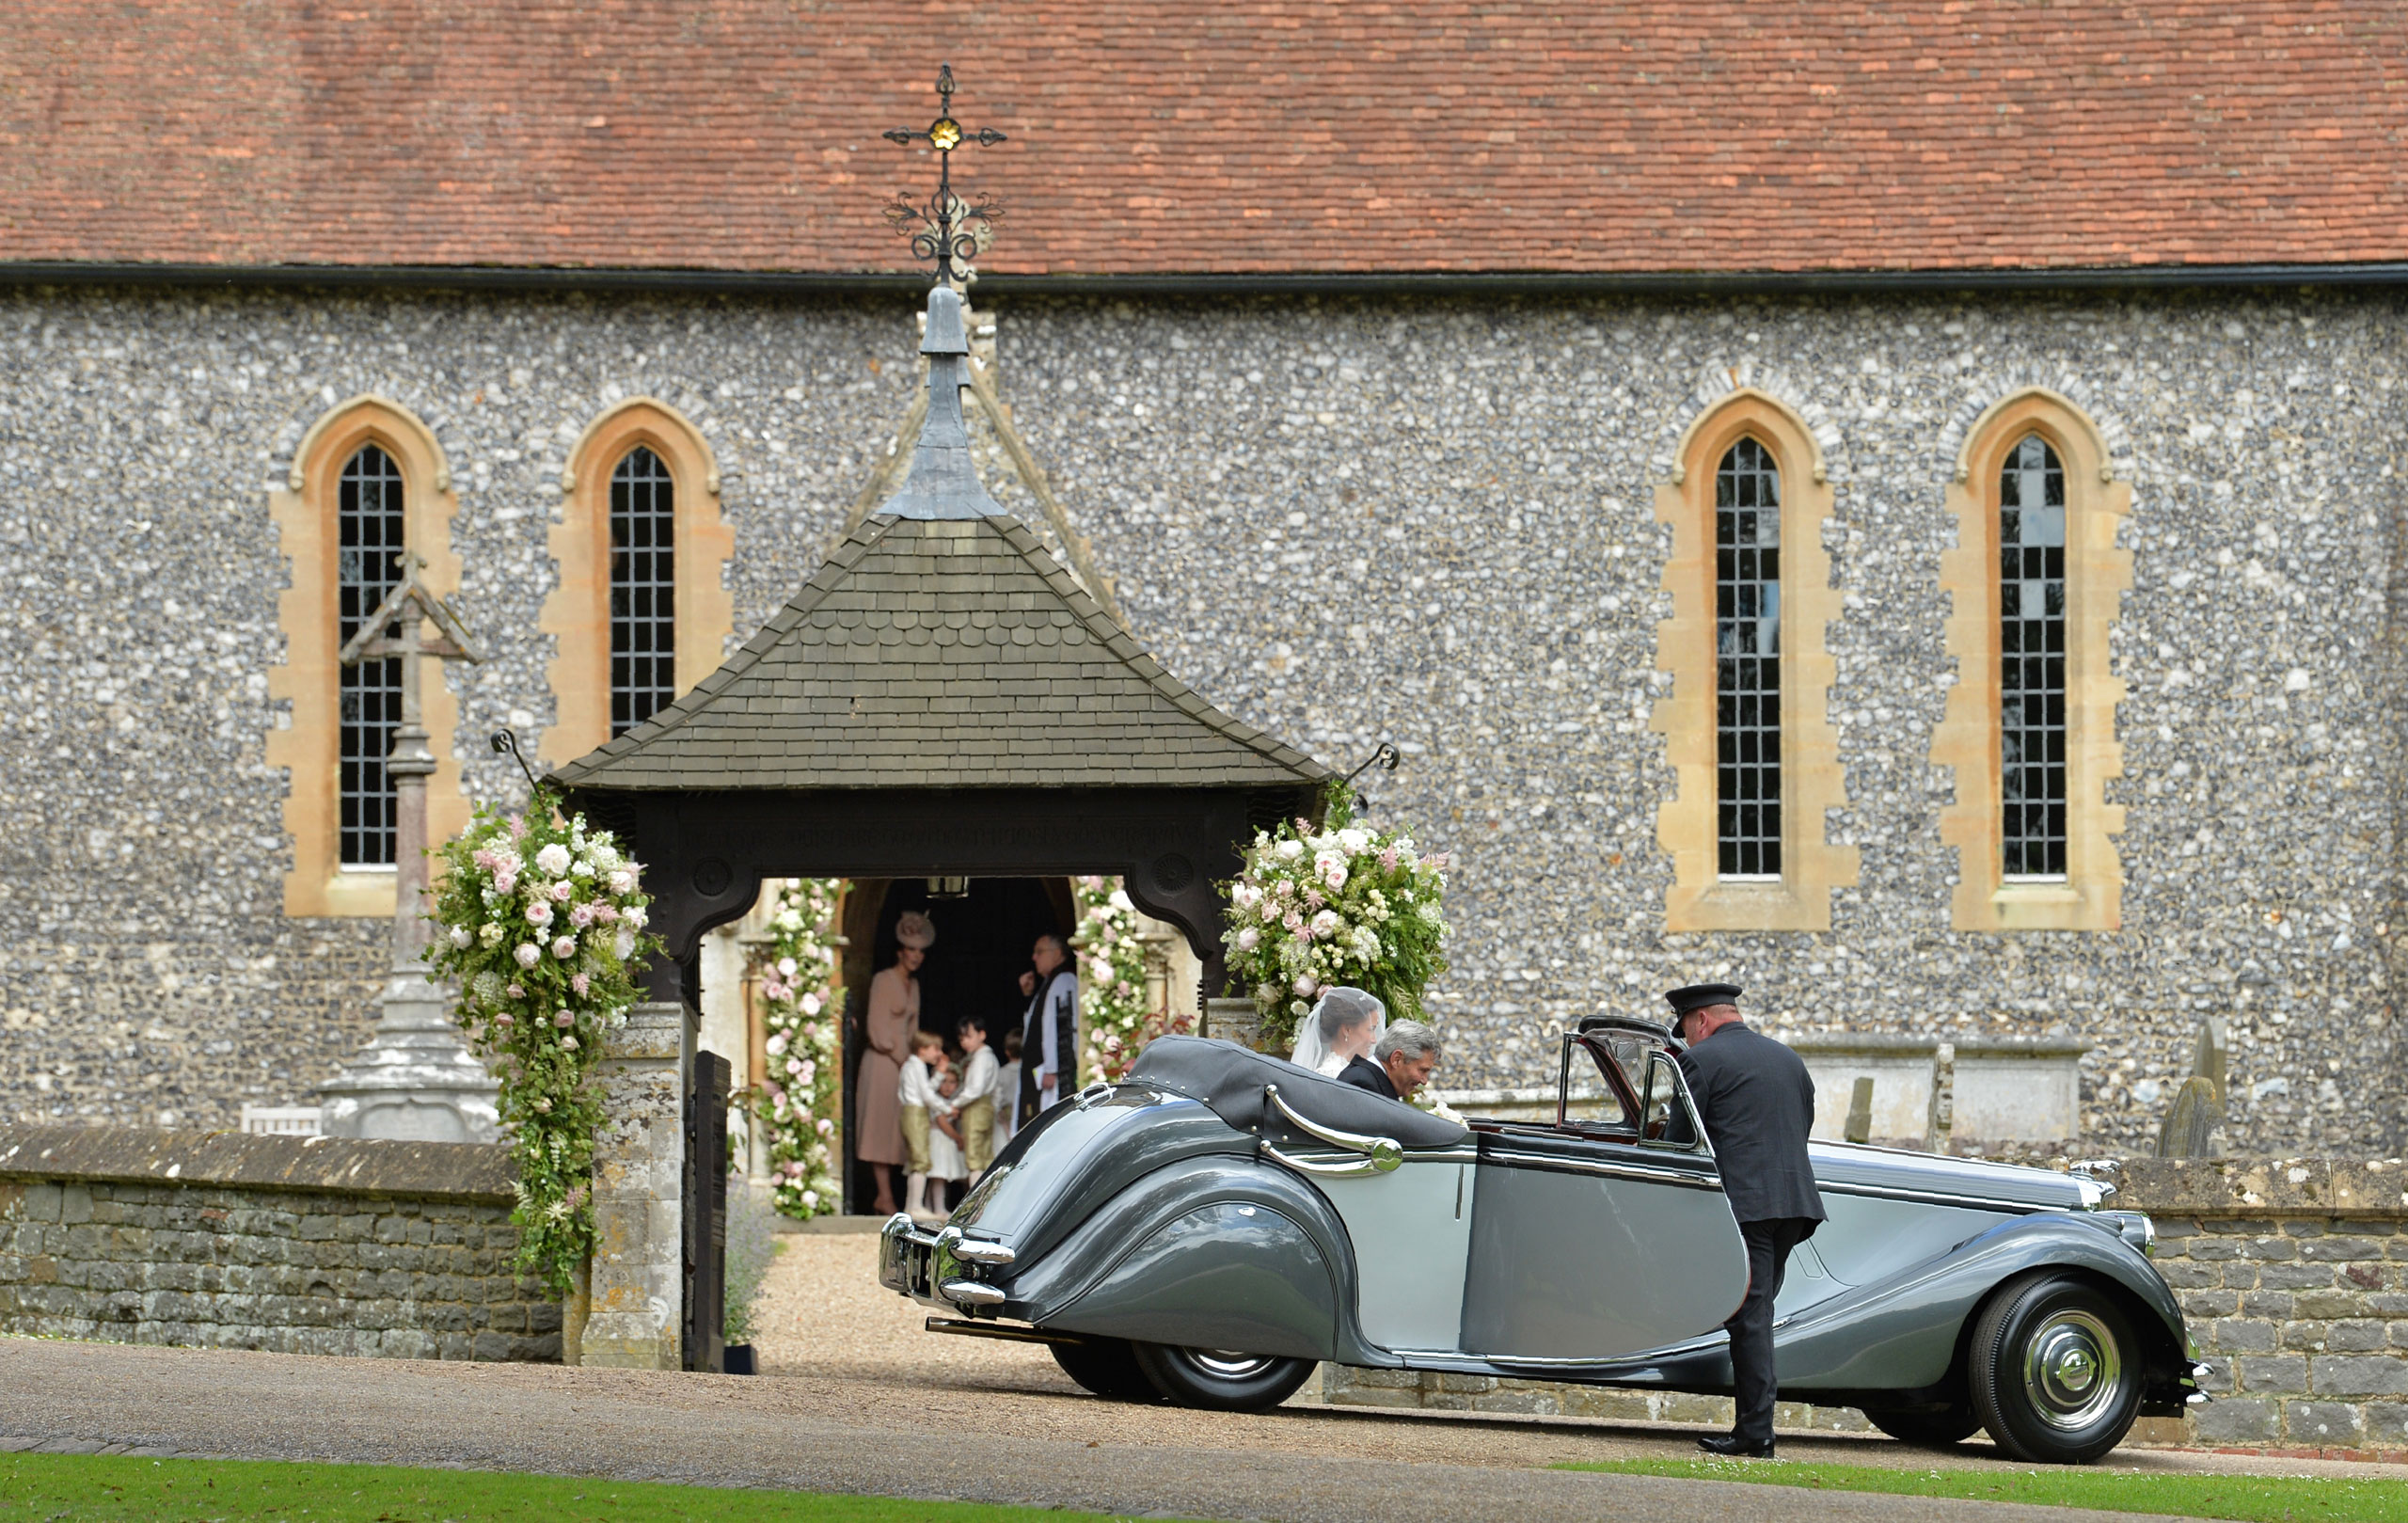 Catherine, Duchess of Cambridge stands with pageboys and bridesmaids in the doorway of St Mark's Church as her sister Pippa Middleton arrives with their father Michael Middleton in a vintage Jaguar for her wedding to James Matthews at St Mark's Church on May 20, 2017 in Englefield Green, England.